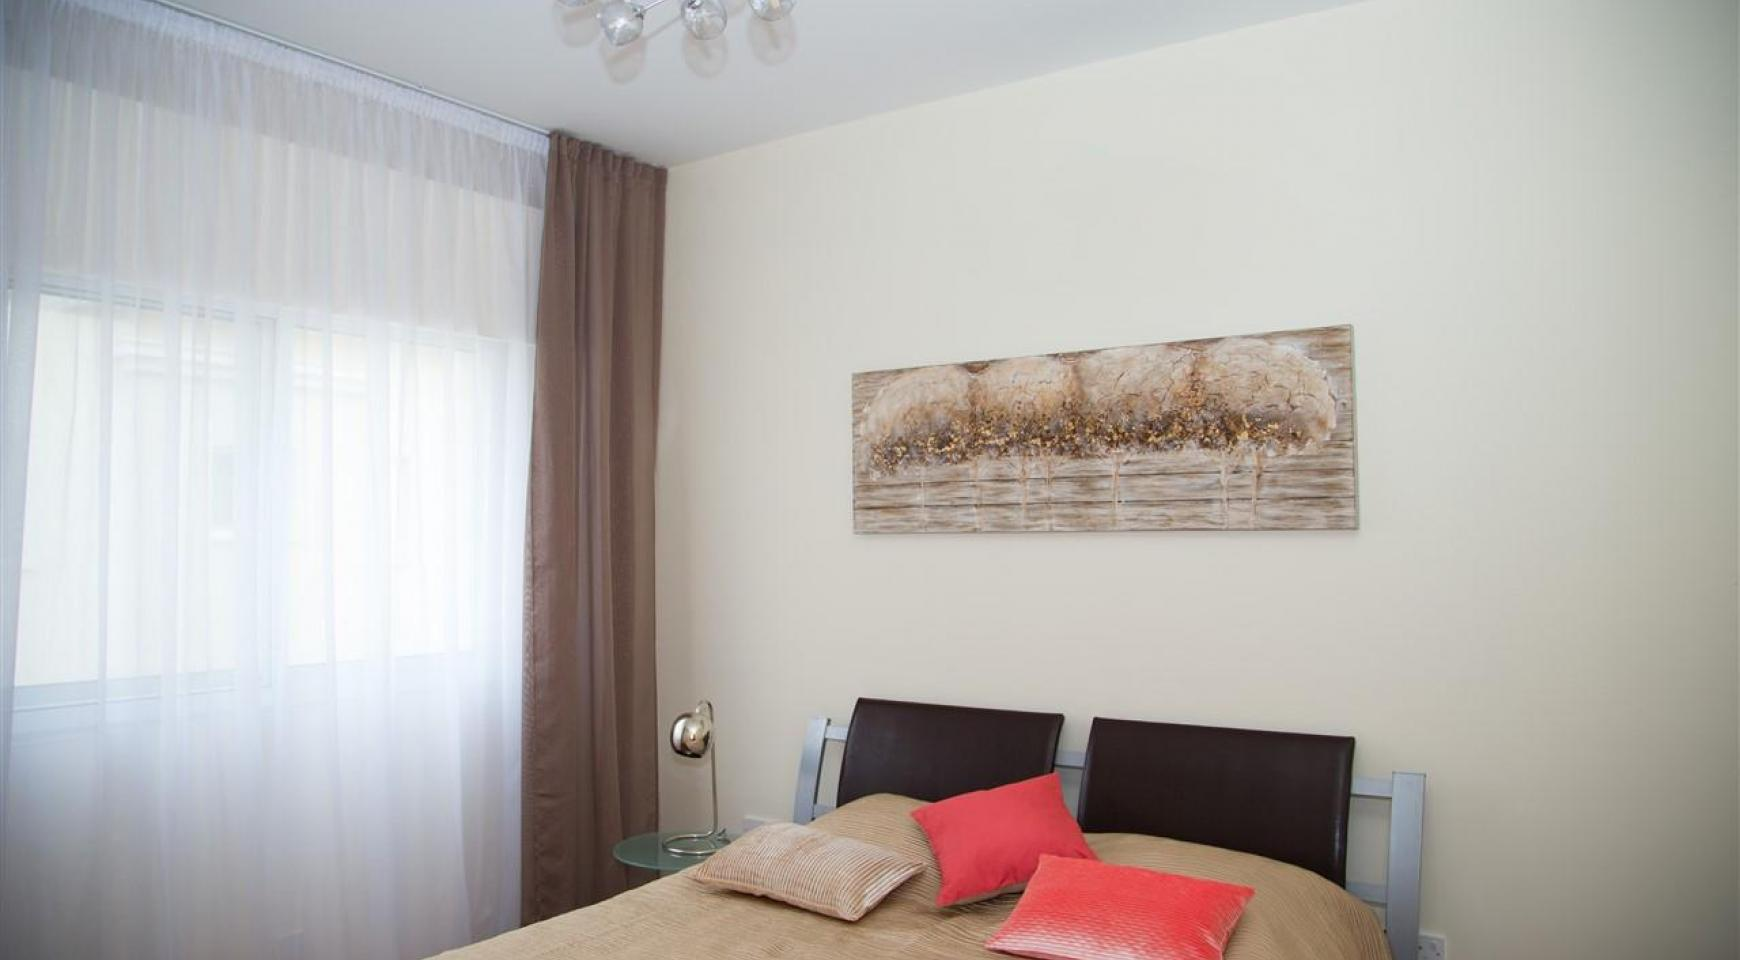 Luxury 2 Bedroom Apartment Mesogios Iris 304 in the Tourist area near the Beach - 19